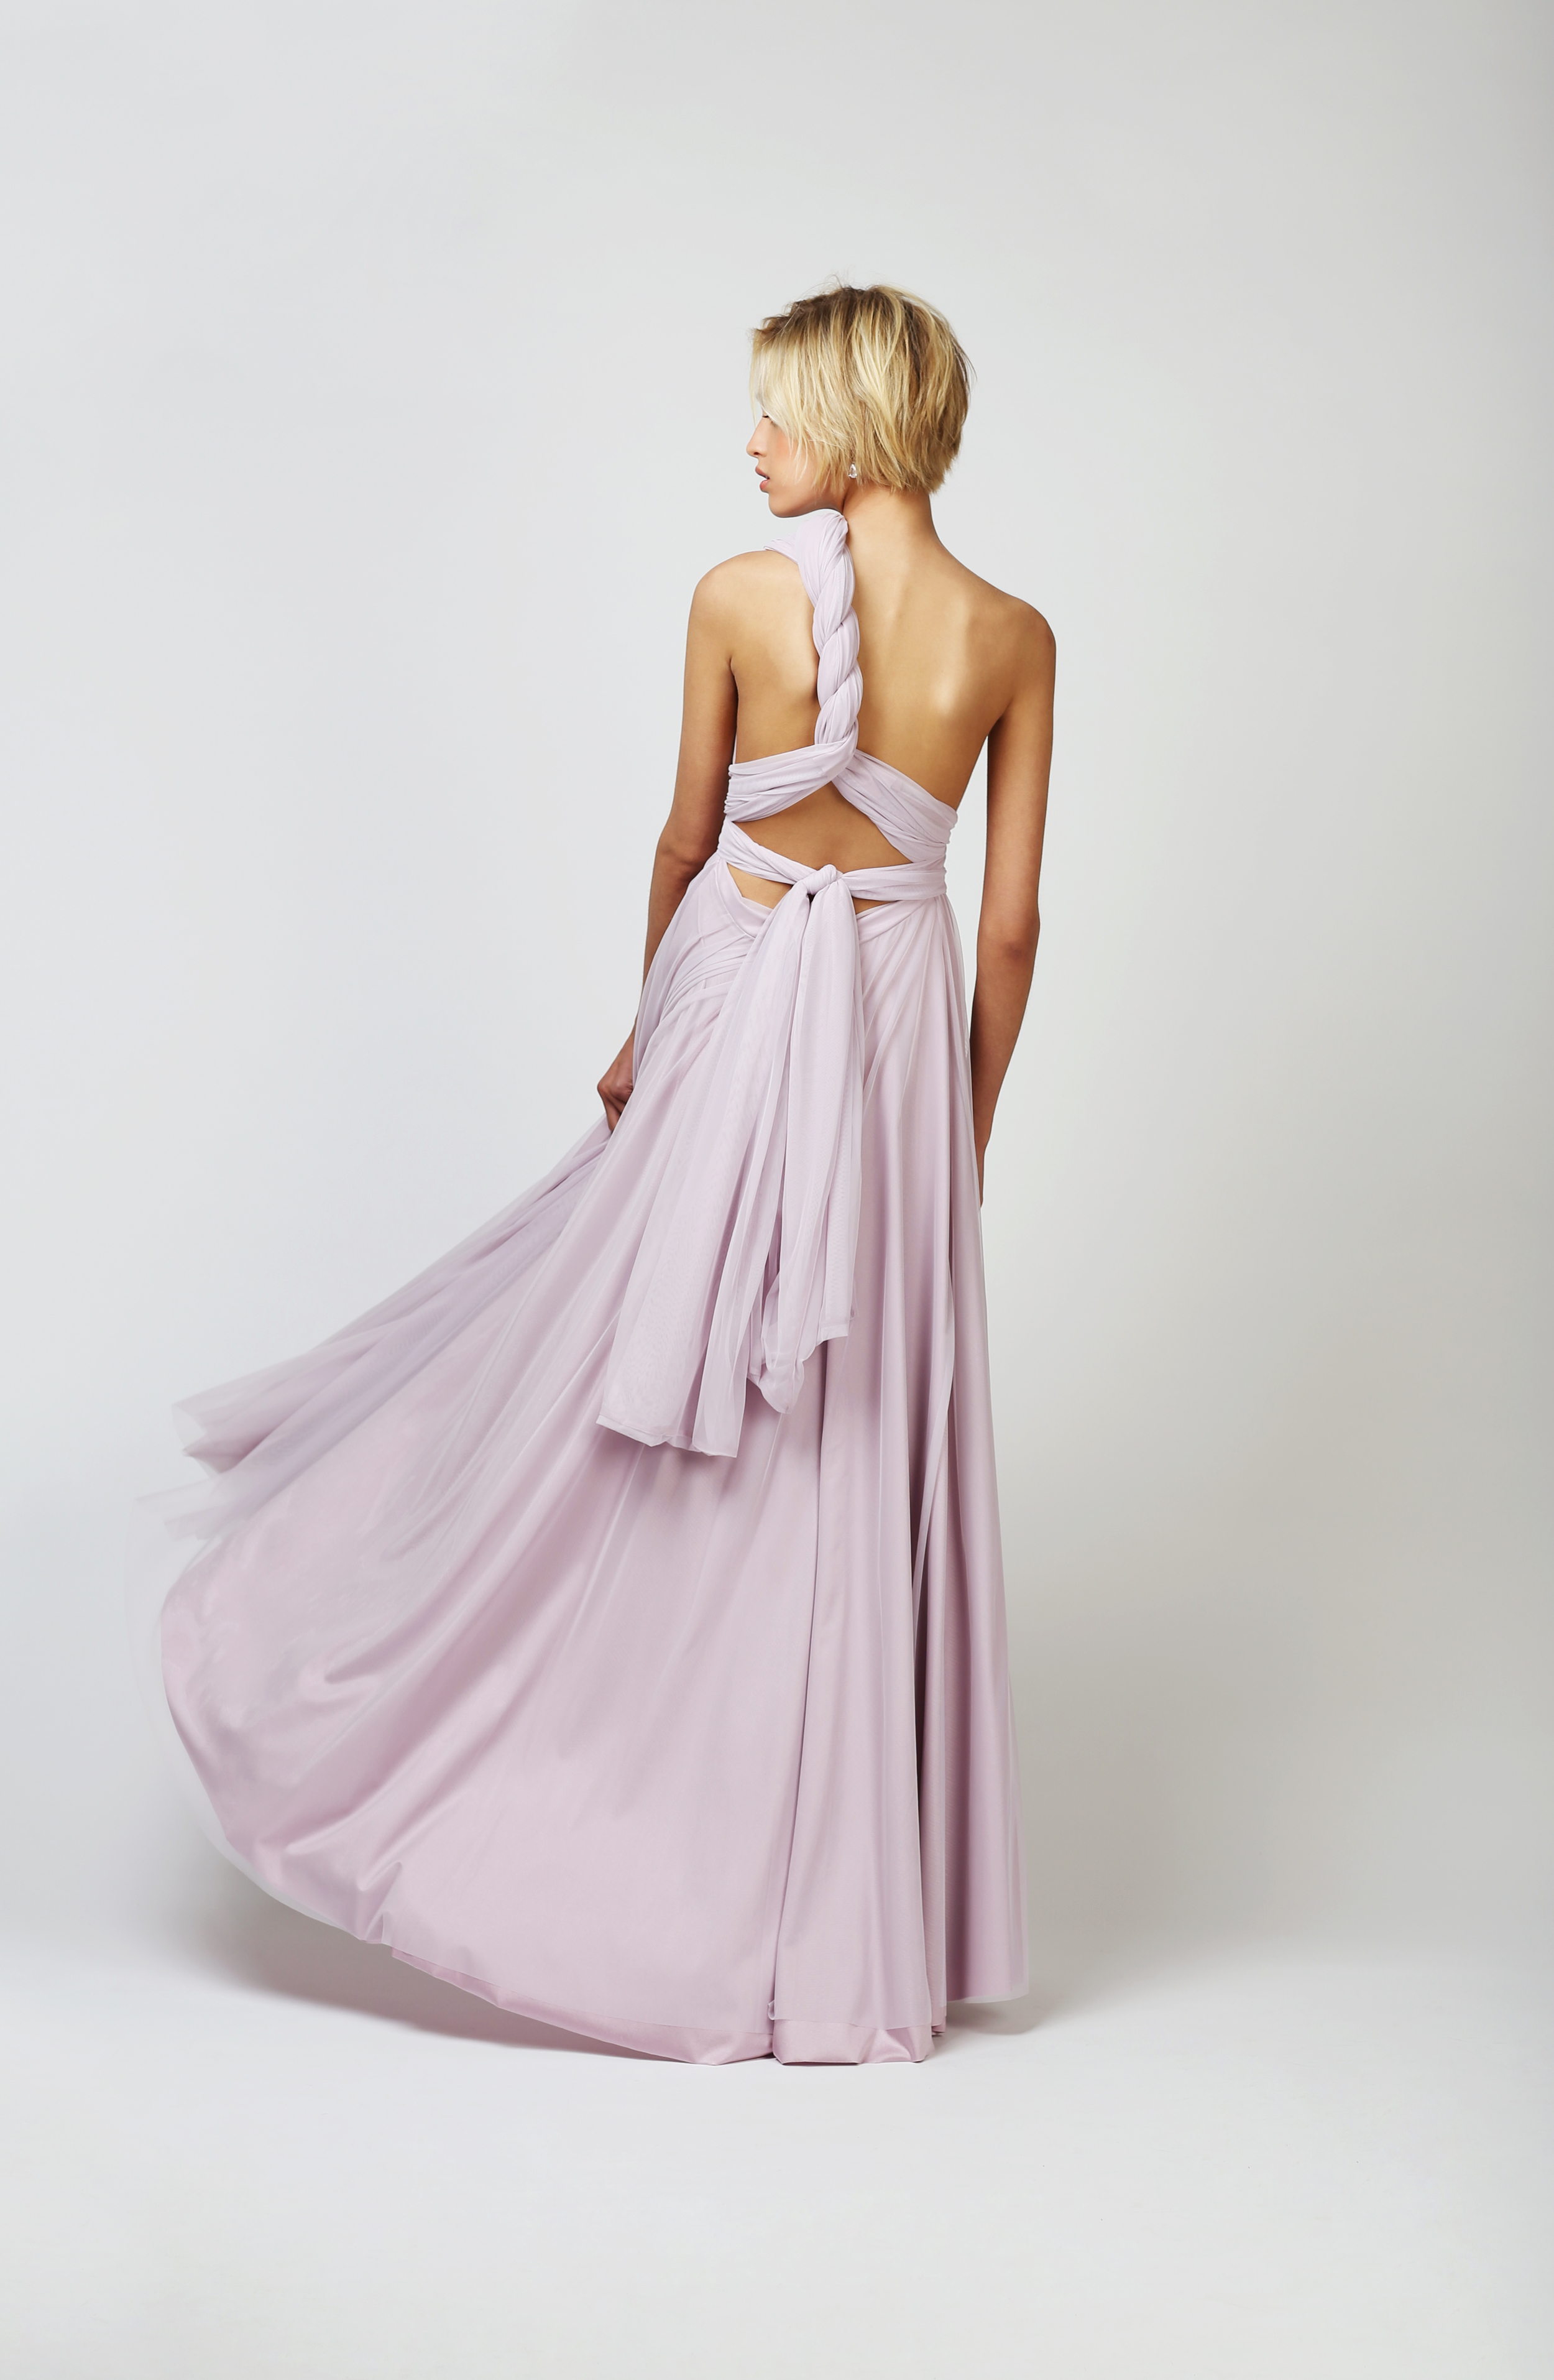 TWO BIRDS TULLE BALL GOWN - LILAC